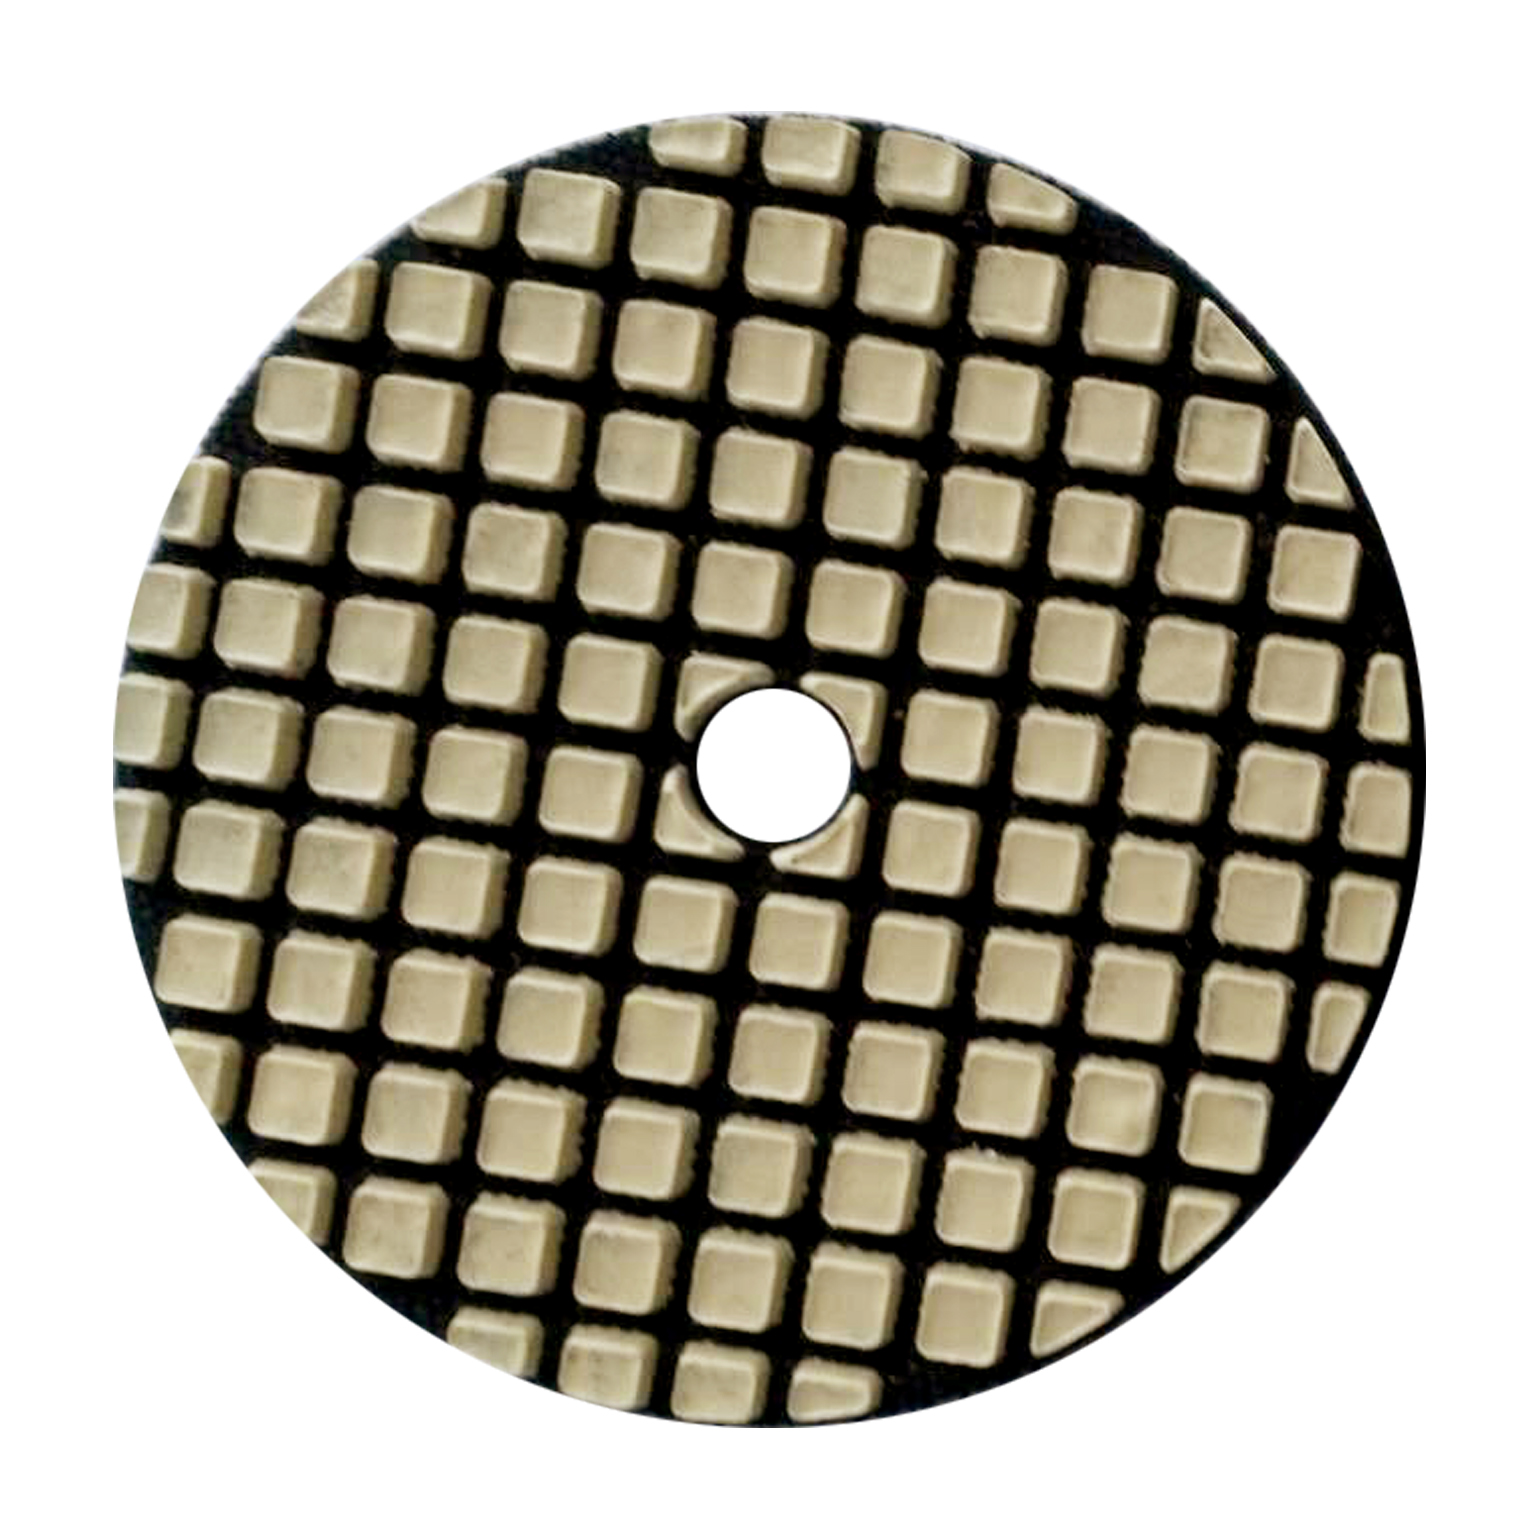 Super diamond polishing pad